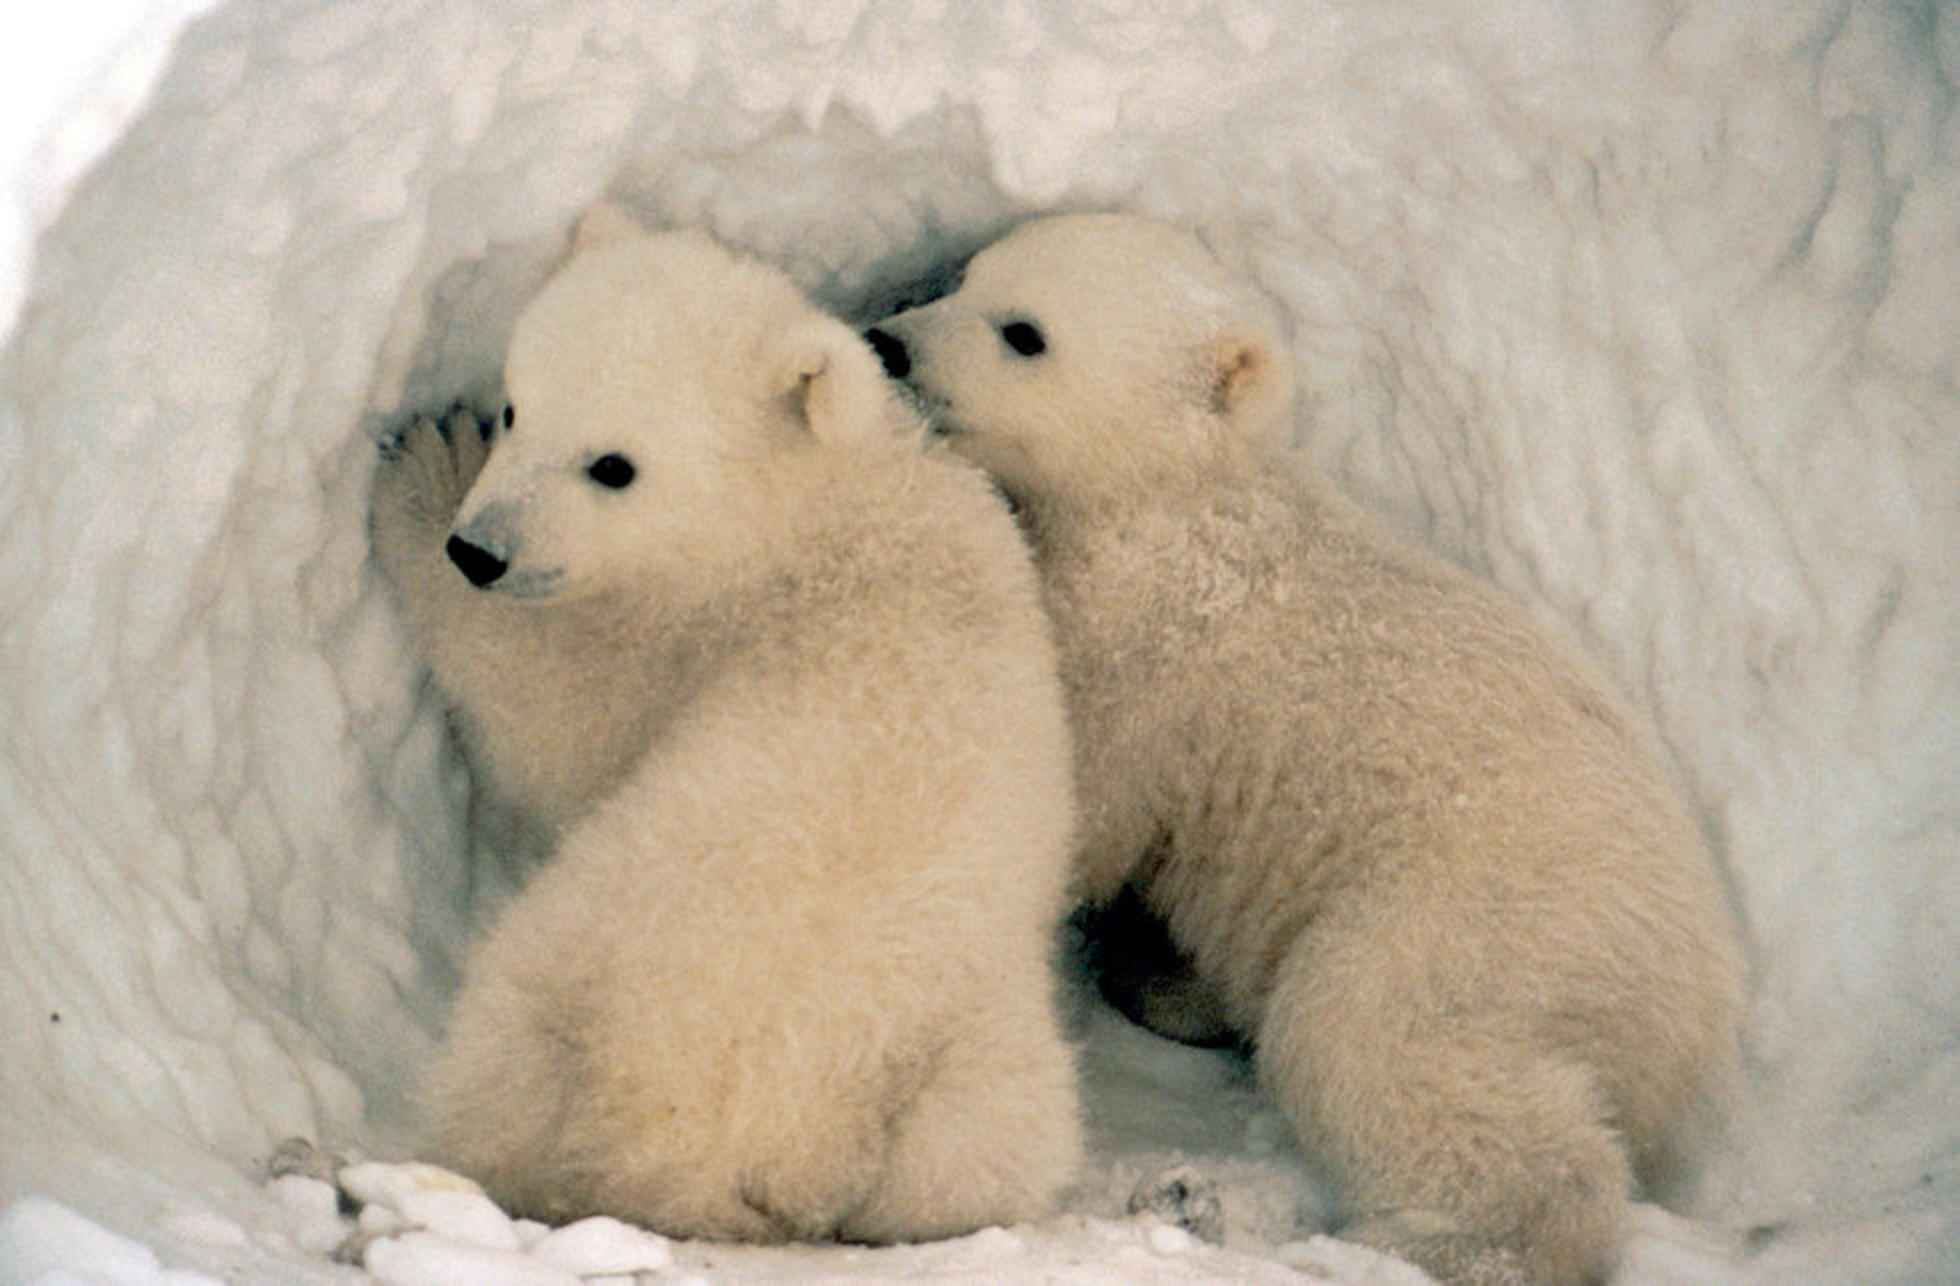 Two polar bear cubs standing at the entrance to a snow den.